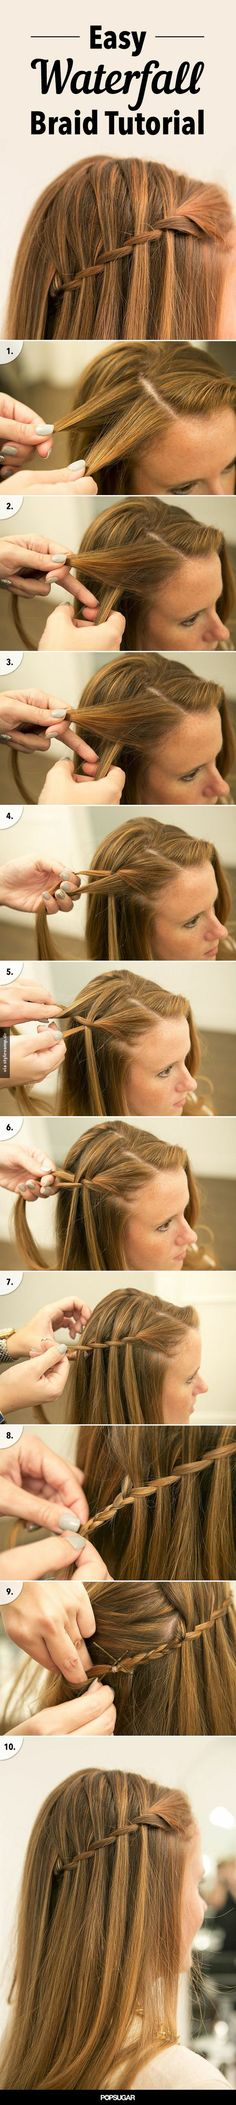 First Sight Fashion: The Waterfall Braid Tutorial